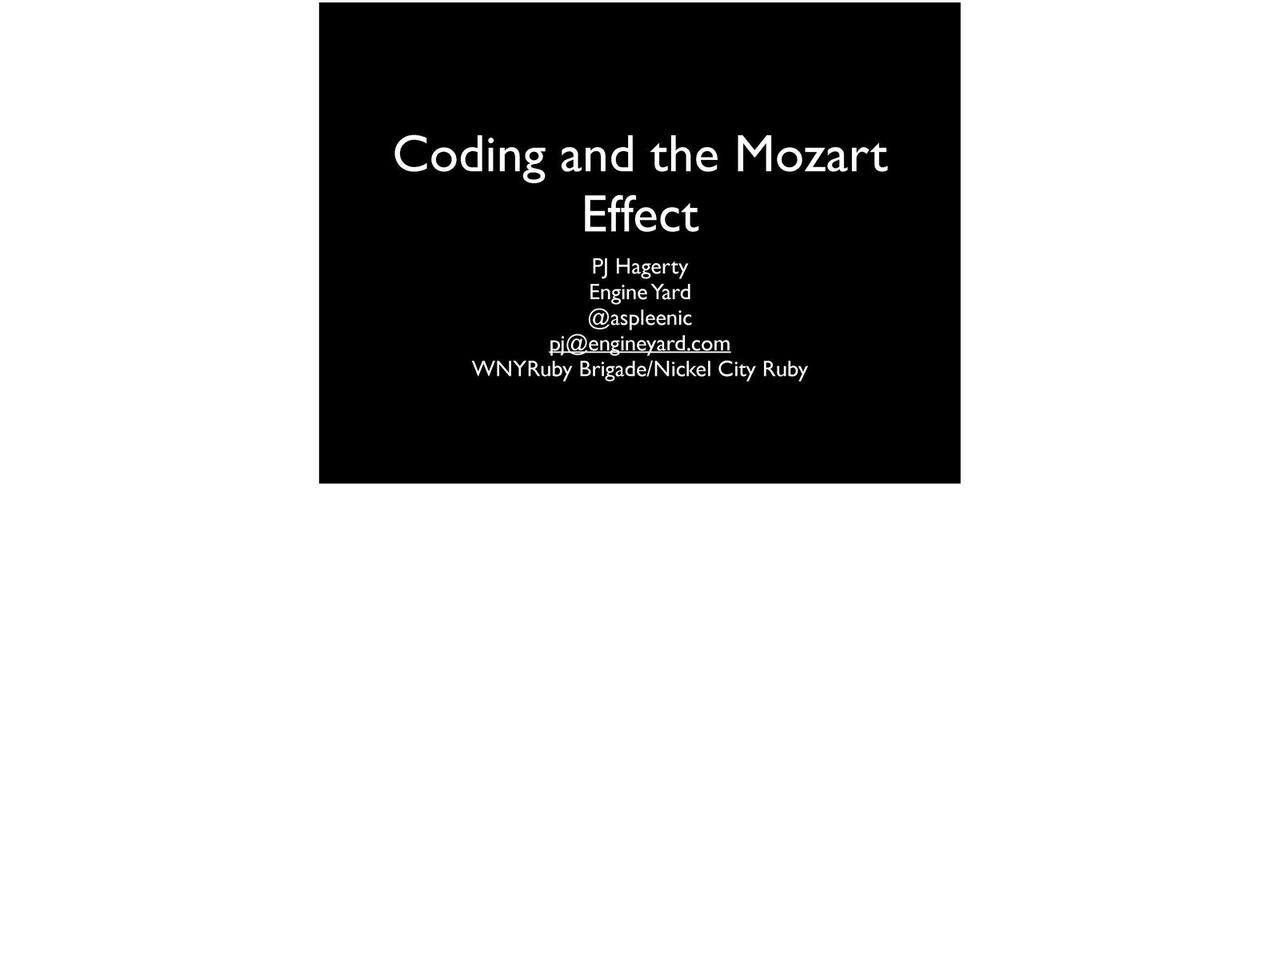 Coding and the Mozart Effect